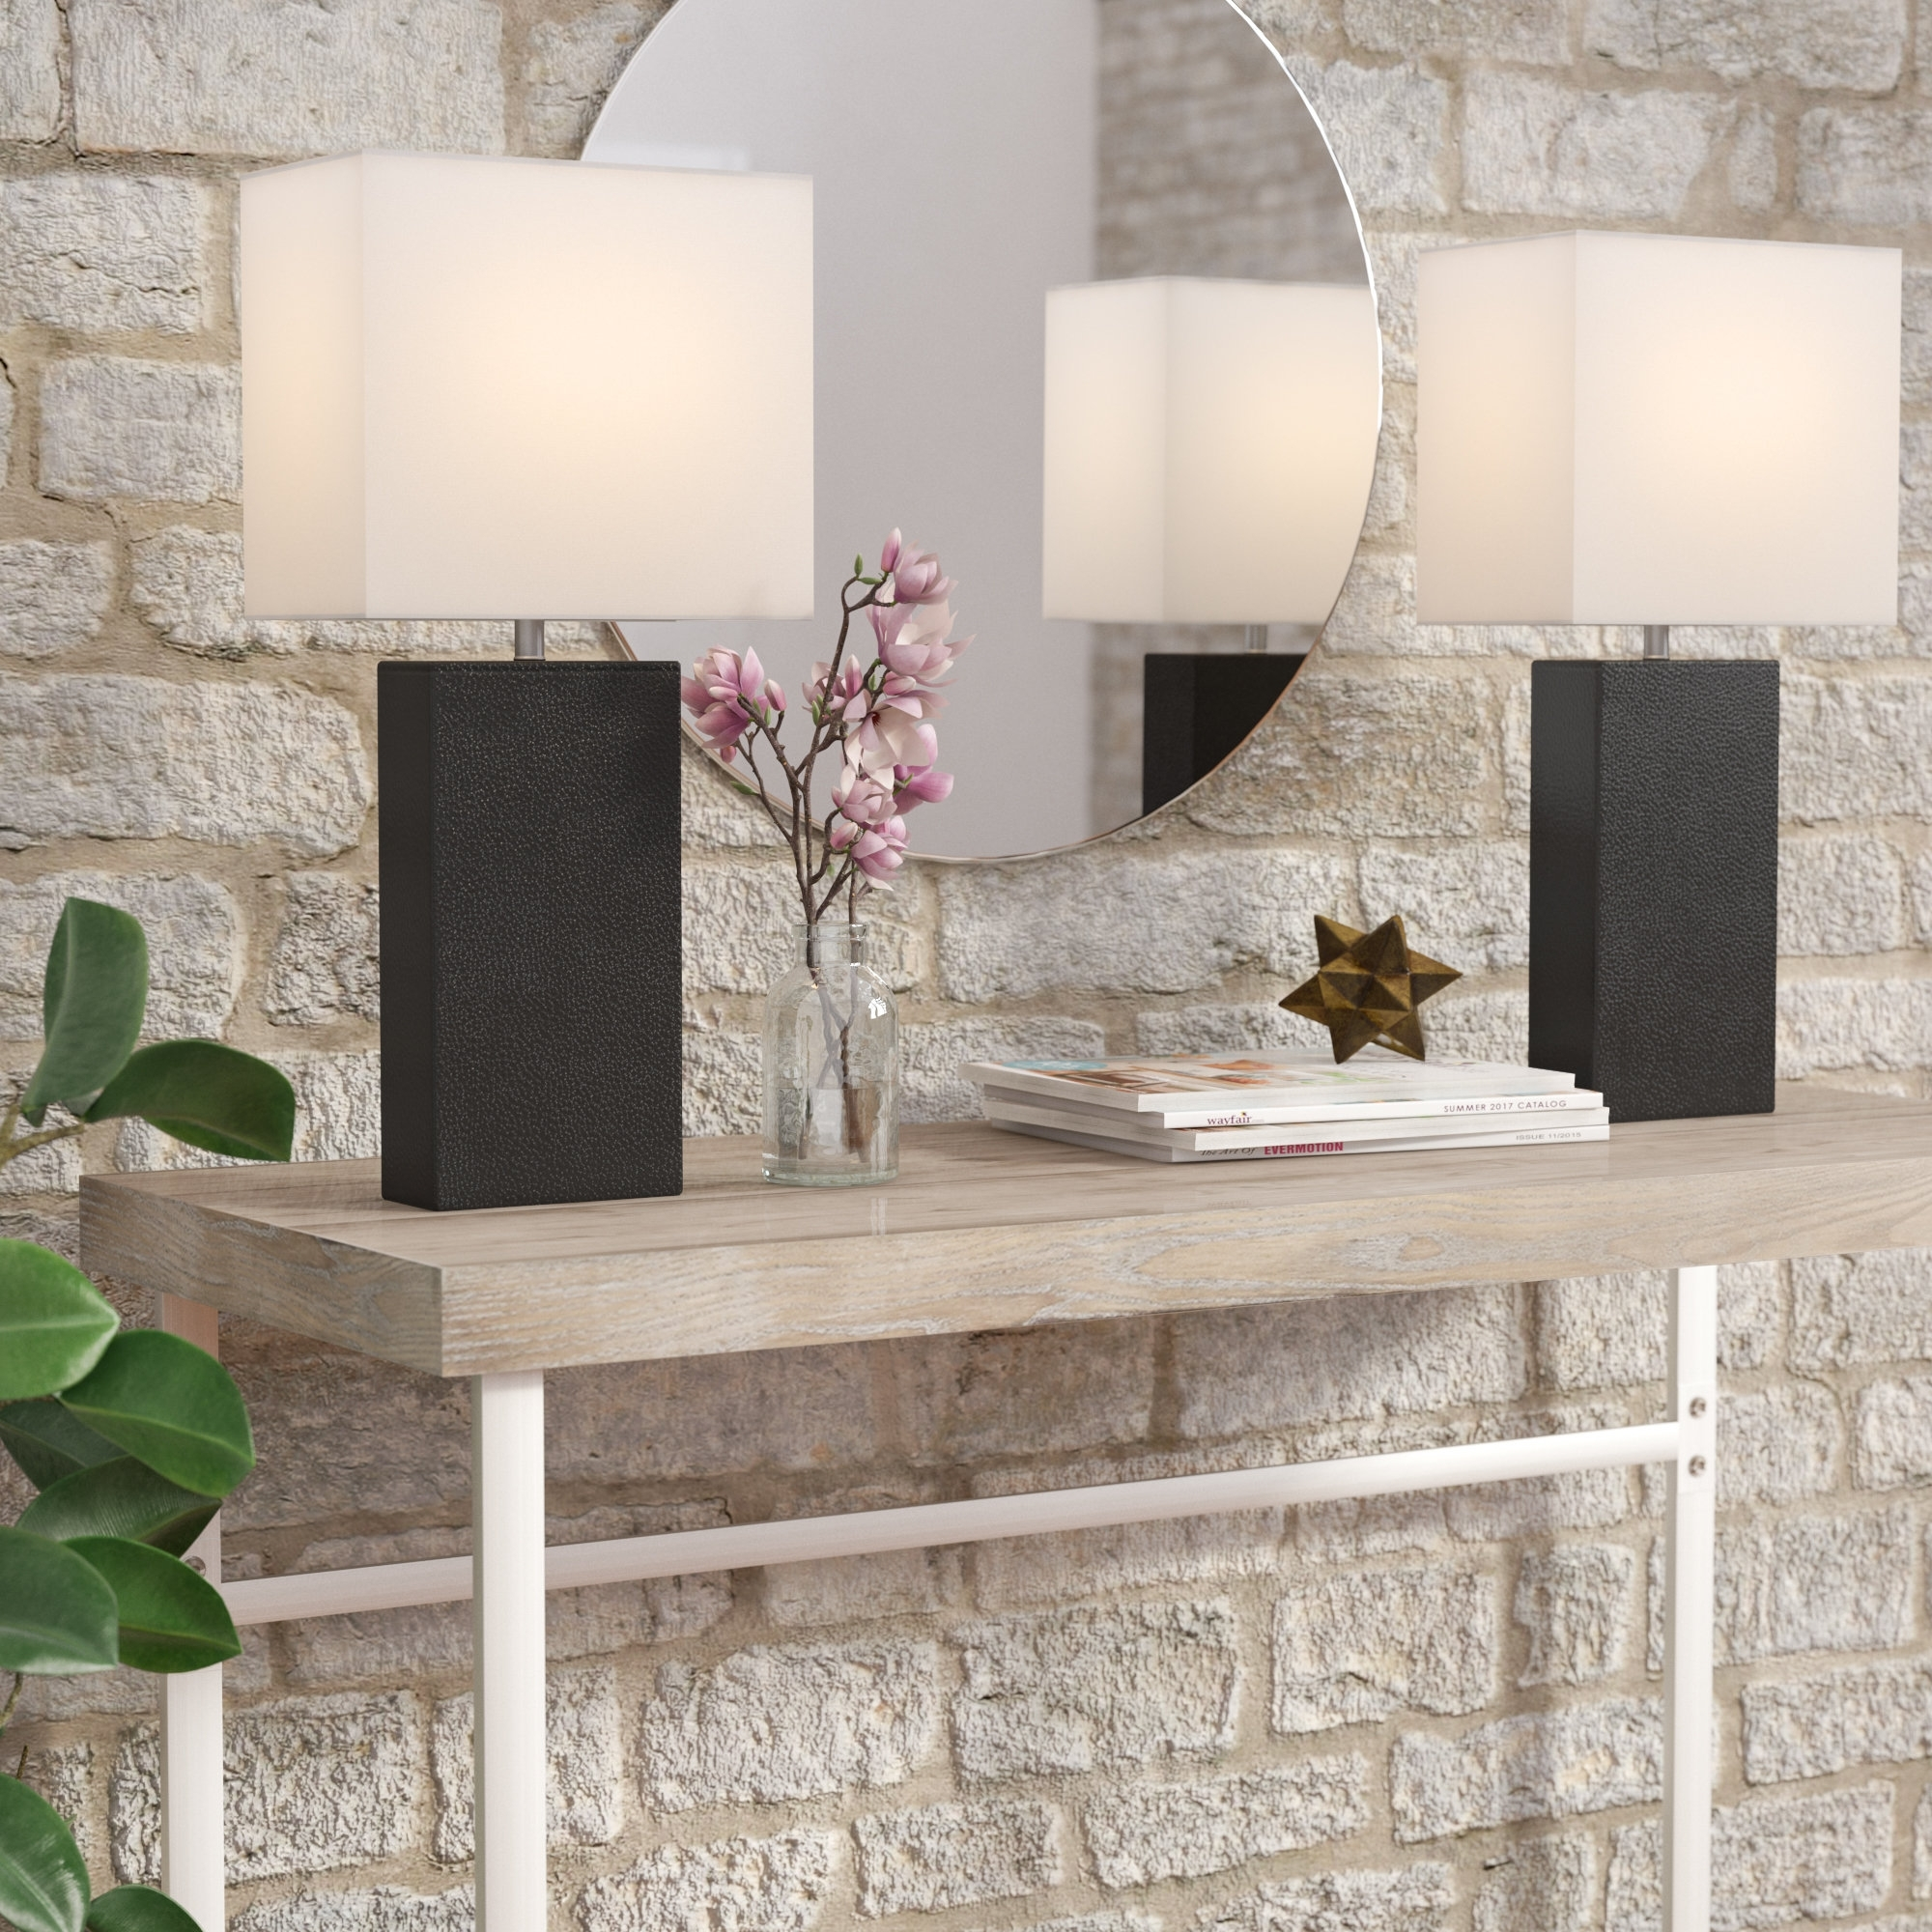 Extraordinary Living Room Table Lamps 3 Indra 21 22 Lamp | Tingsmombooks With Living Room Table Lamps (#5 of 15)